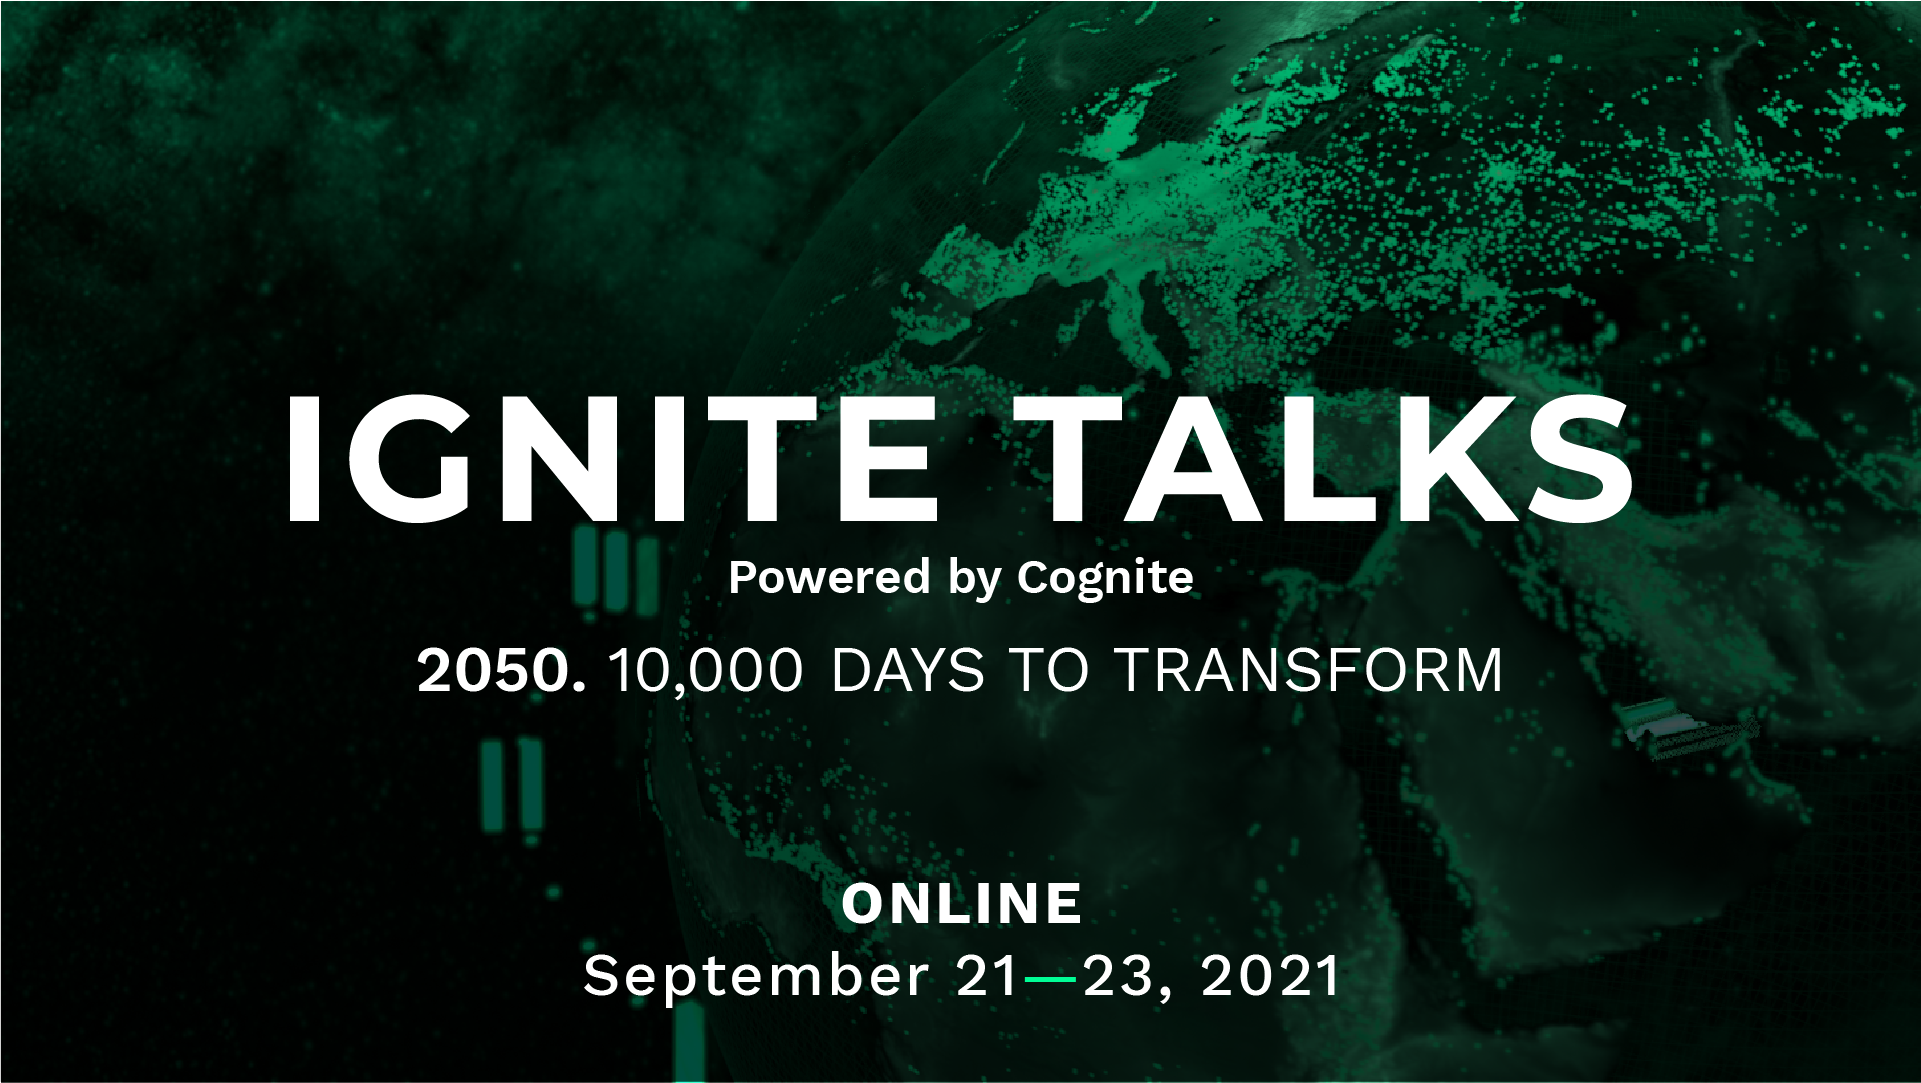 Ignite News 1 - Ignite